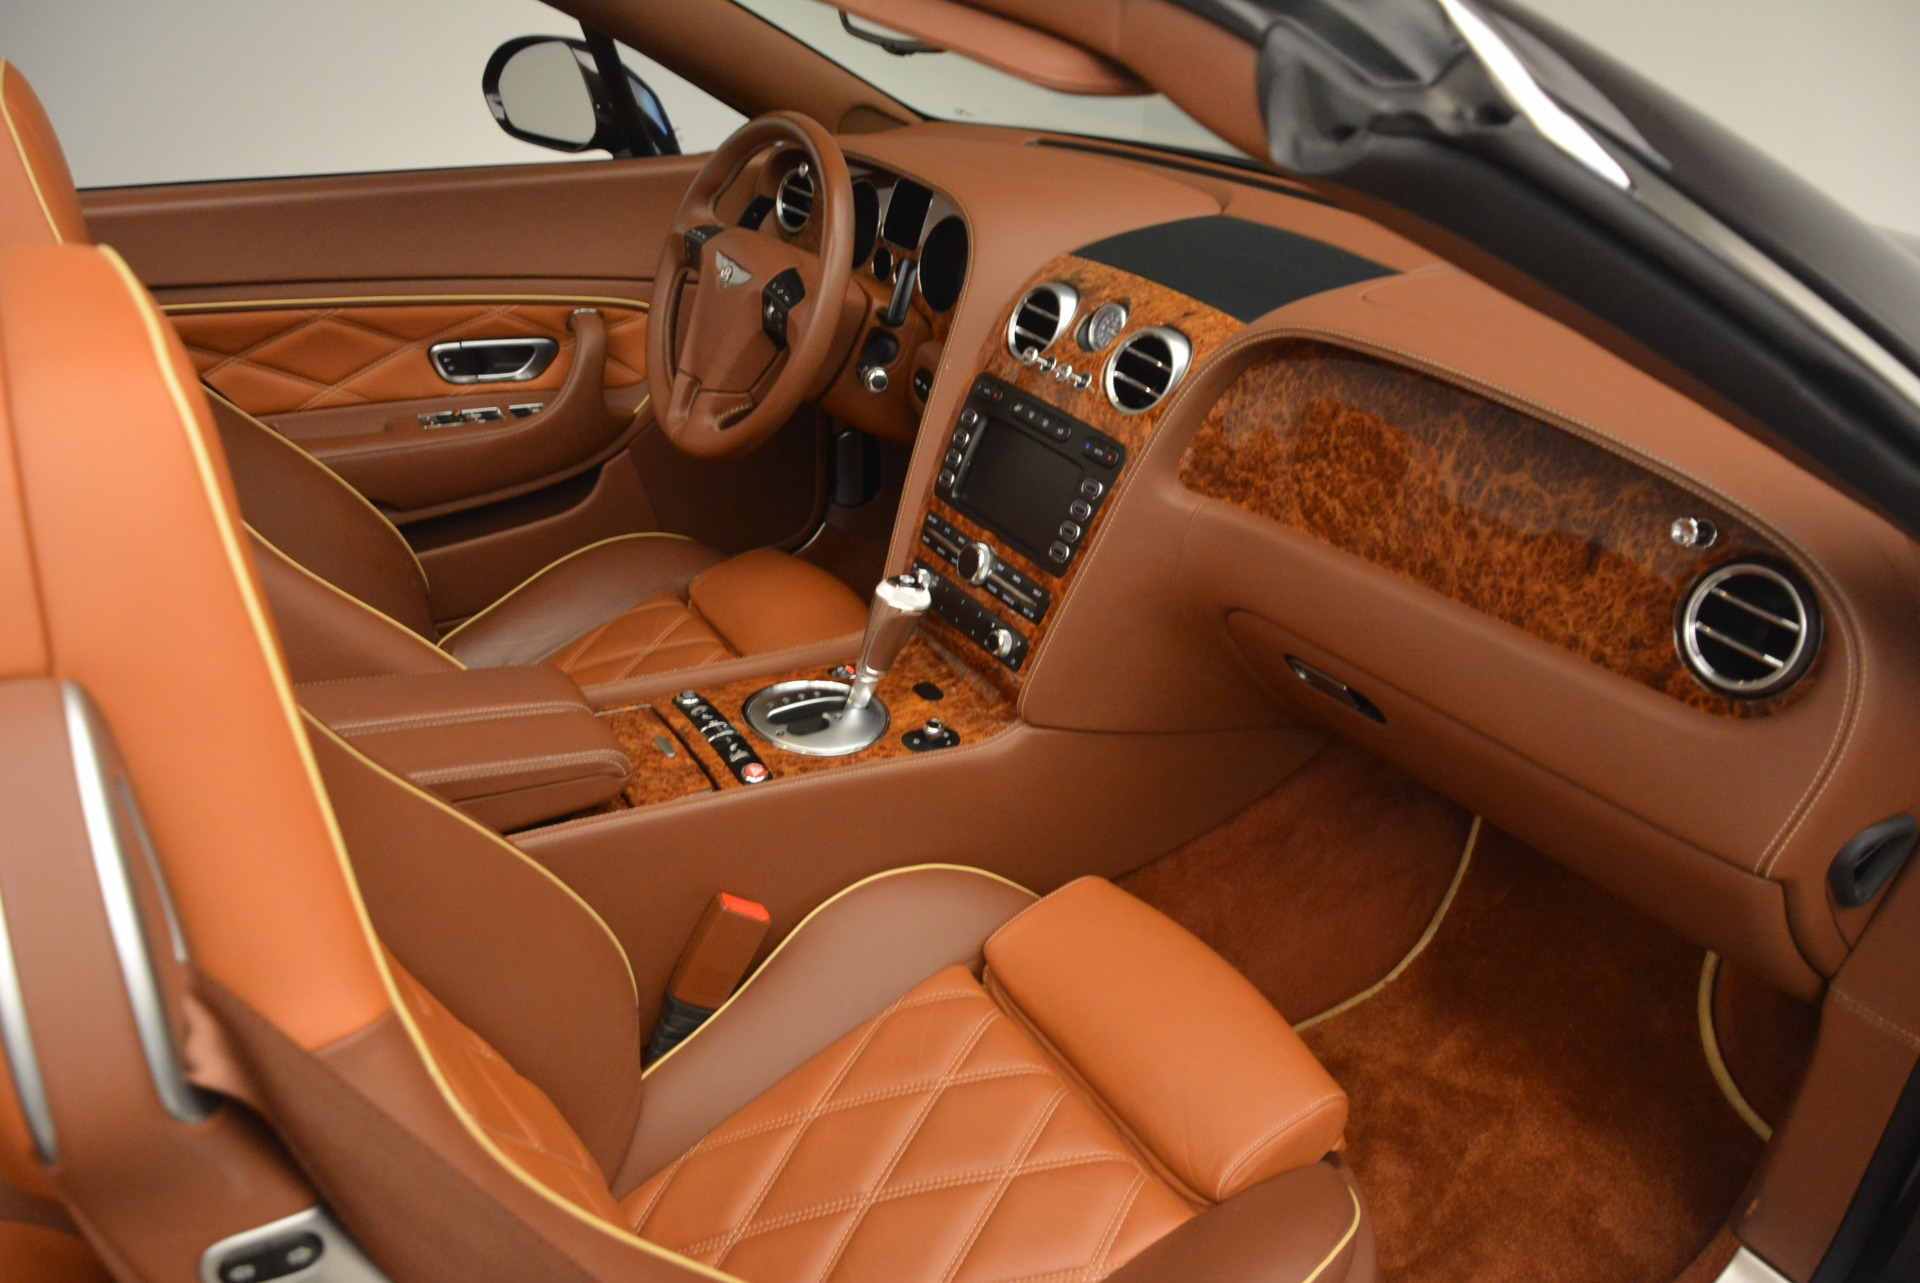 Used 2010 Bentley Continental GT Series 51 For Sale In Greenwich, CT. Alfa Romeo of Greenwich, 7219 1222_p41